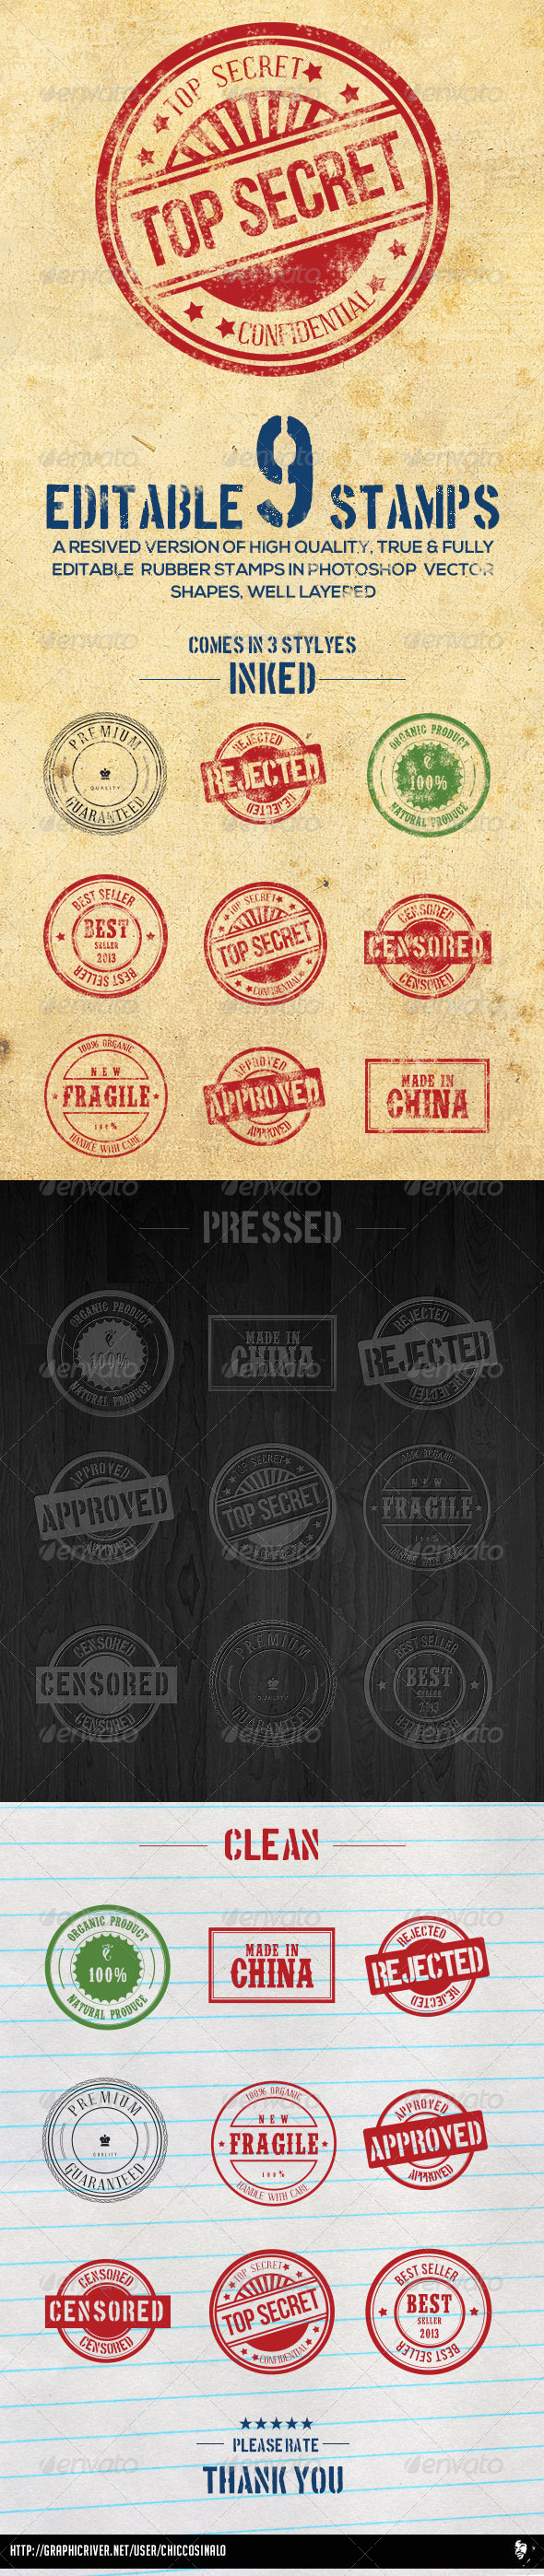 GraphicRiver 9 Editable Photoshop Rubber Stamps 5927832